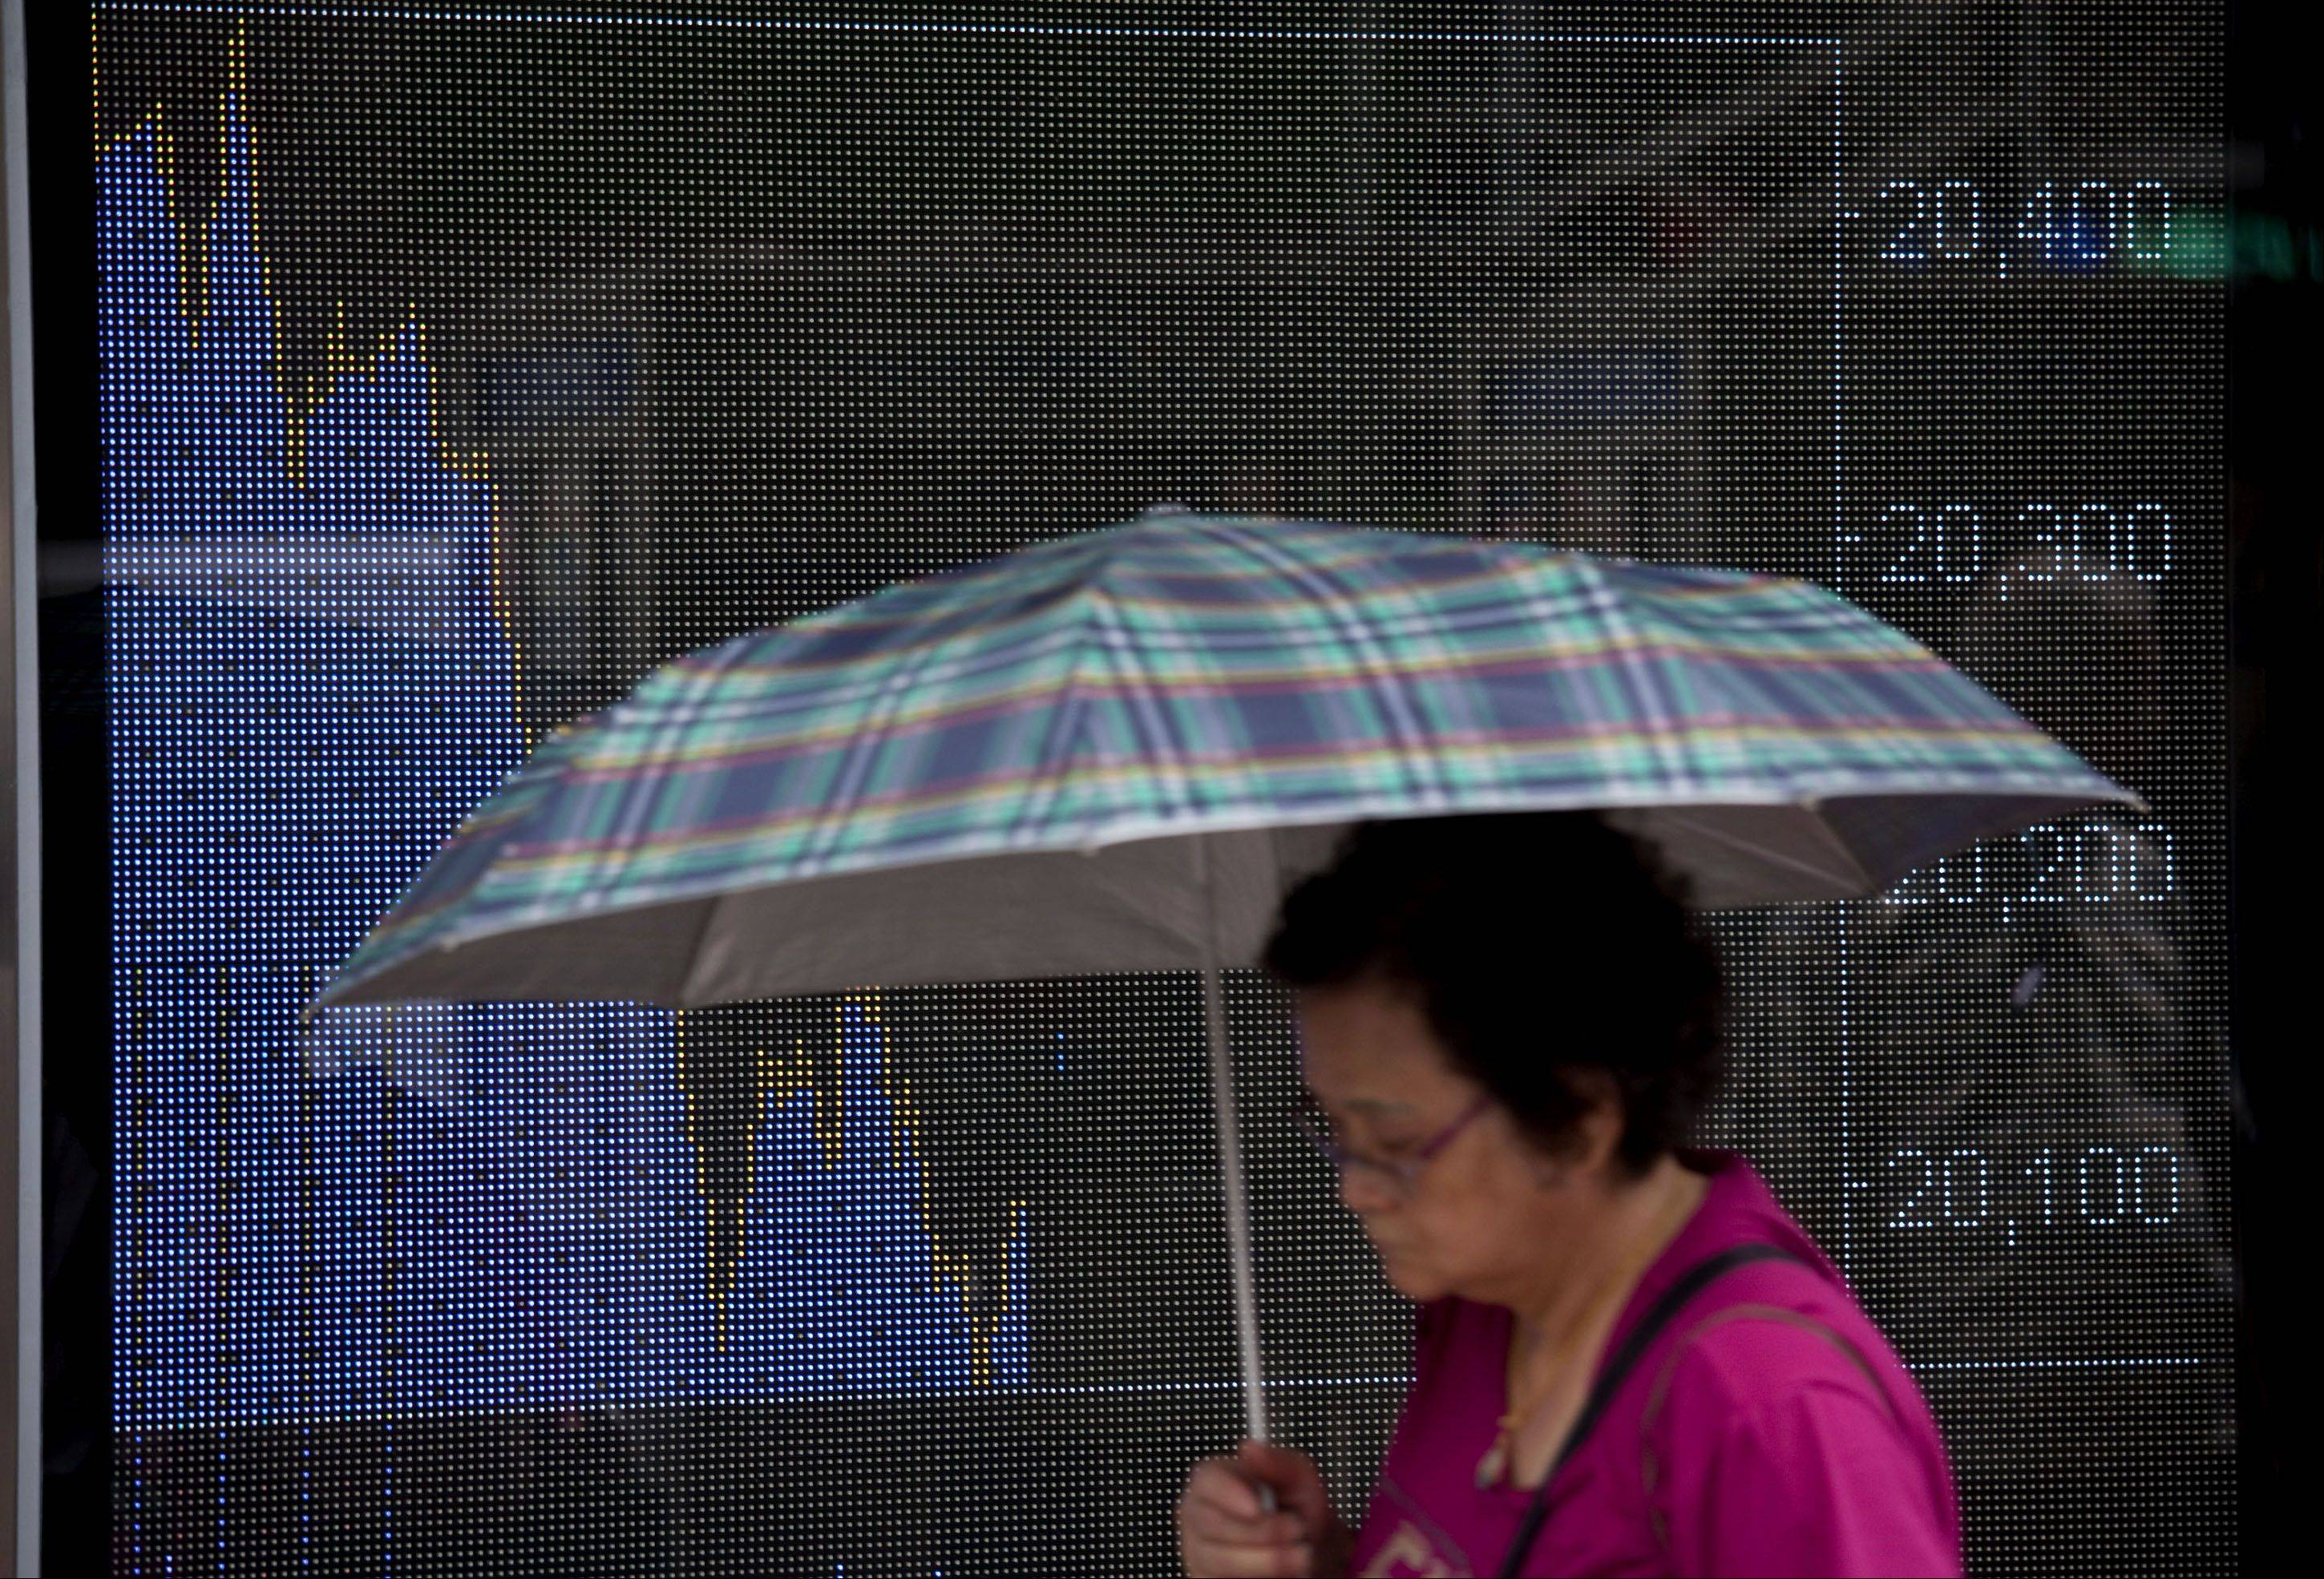 A woman walks past an electronic billboard displaying the Hang Seng Index intraday chart in Hong Kong, China, on Monday, Aug. 8, 2011. Hong Kong stocks dropped, with the benchmark Hang Seng Index set for its biggest two-day slide since October 2008, after Standard & Poor's cut the U.S. credit rating, raising concern global economic growth will slow.